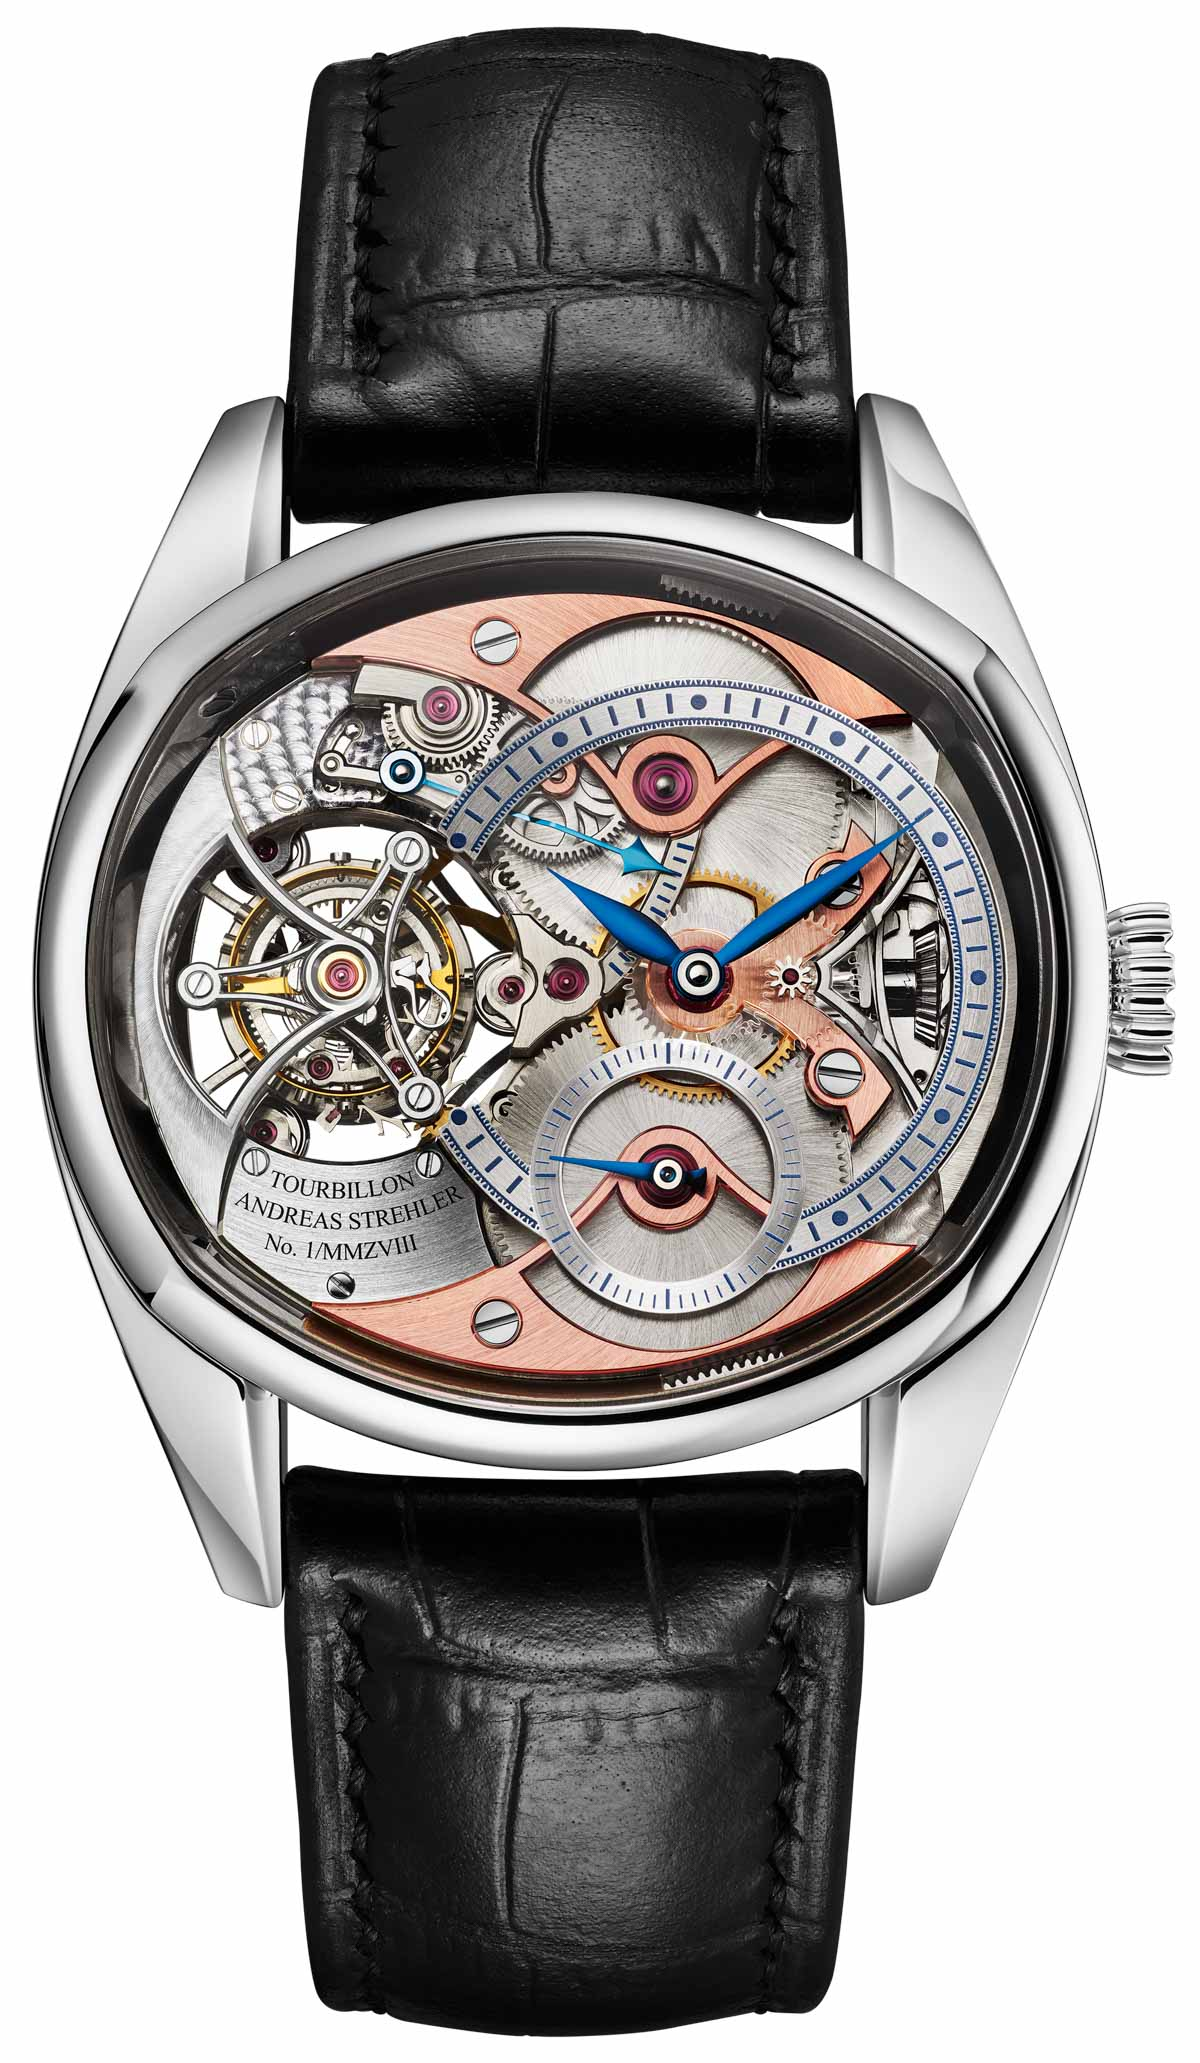 andreas-strehler-transaxle-remontoir-tourbillon-watch-8.jpg